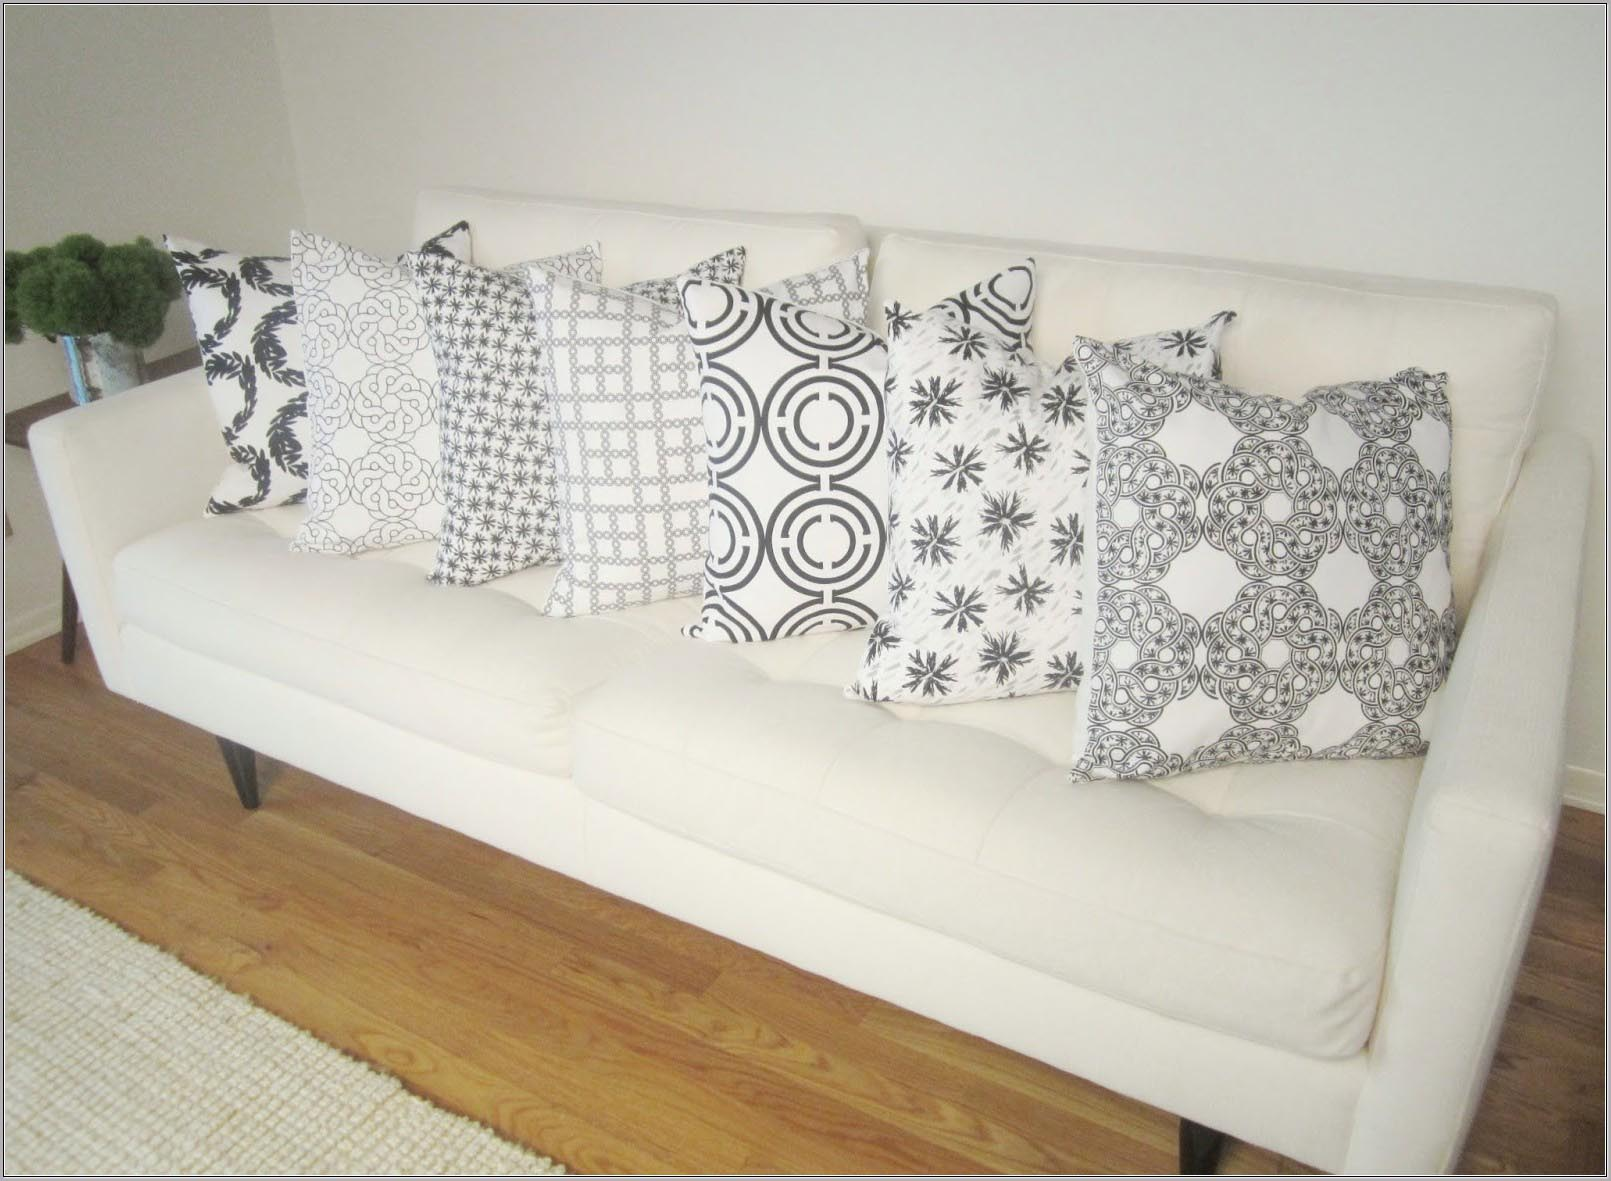 White Decorative Pillows For Bed : White Decorative Pillows For Couch Best Decor Things